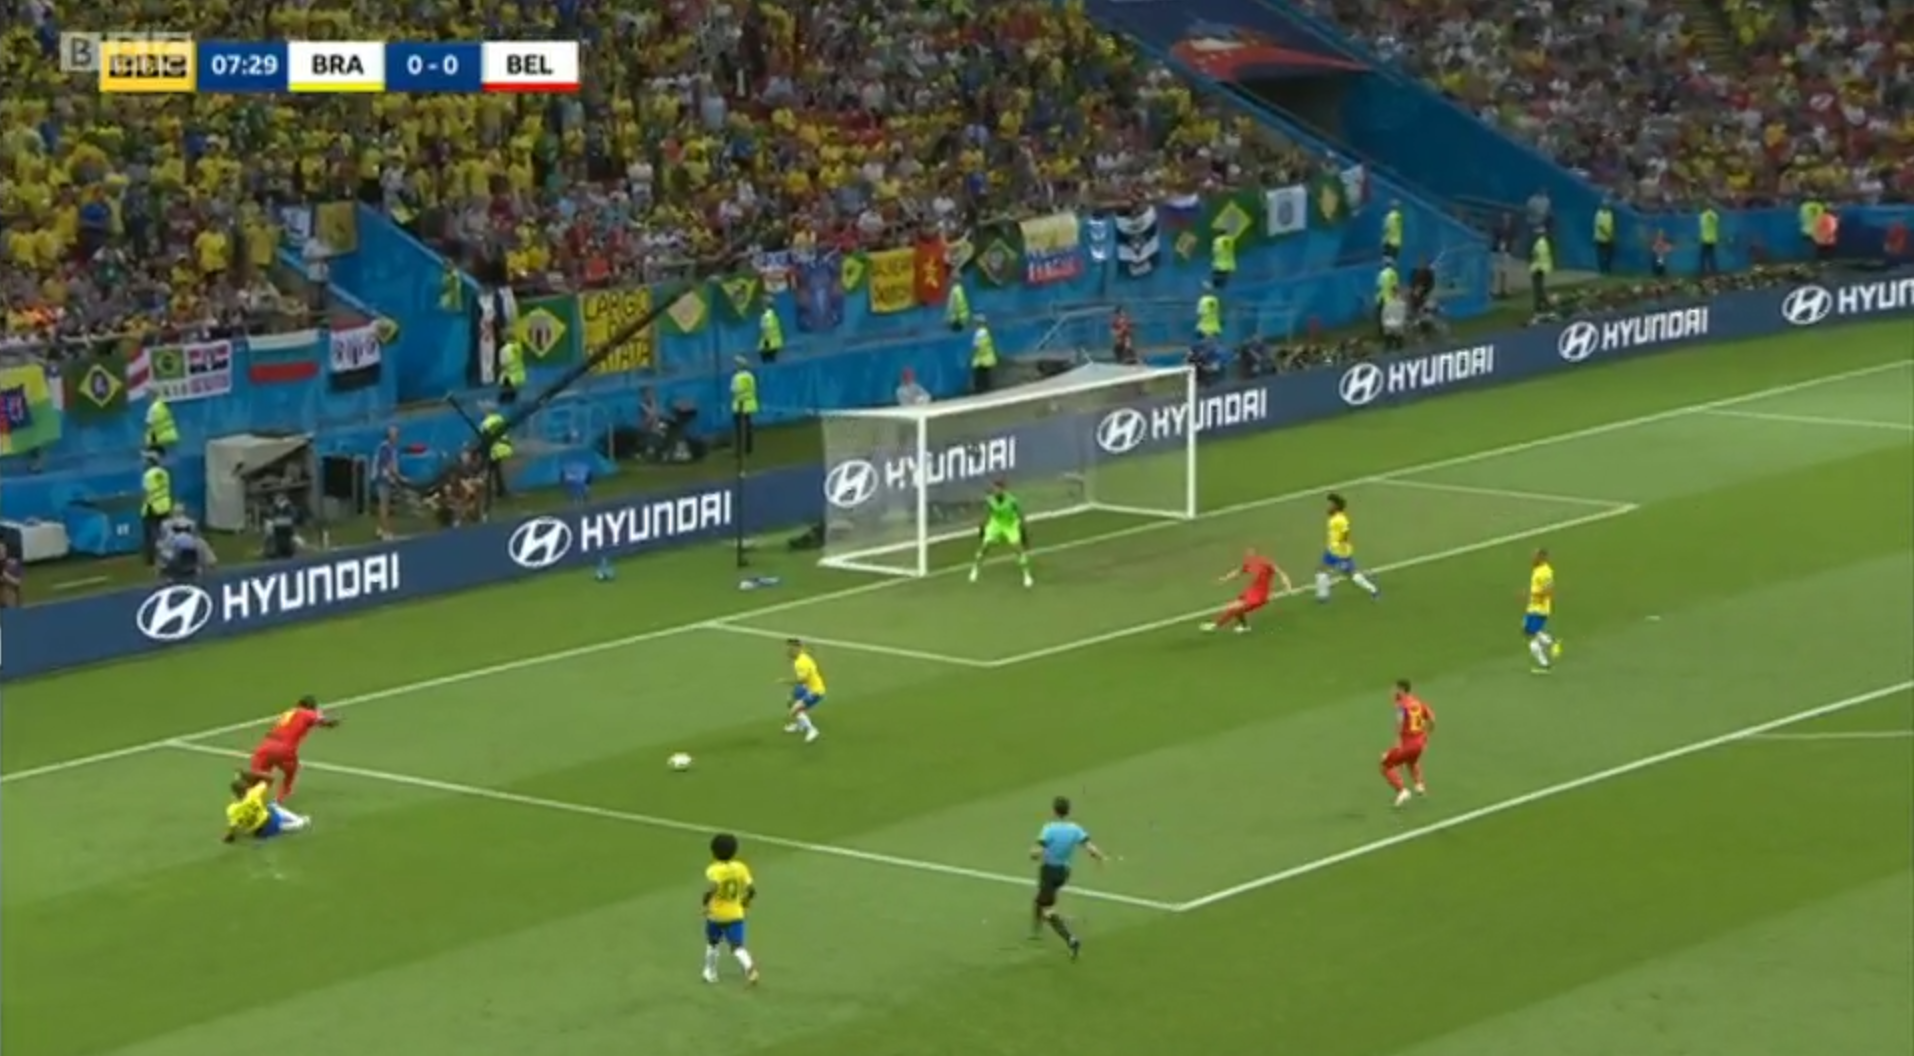 Lukaku evaded the challenge of the Brazilian defenders and Belgium had the ball in the opposition's box